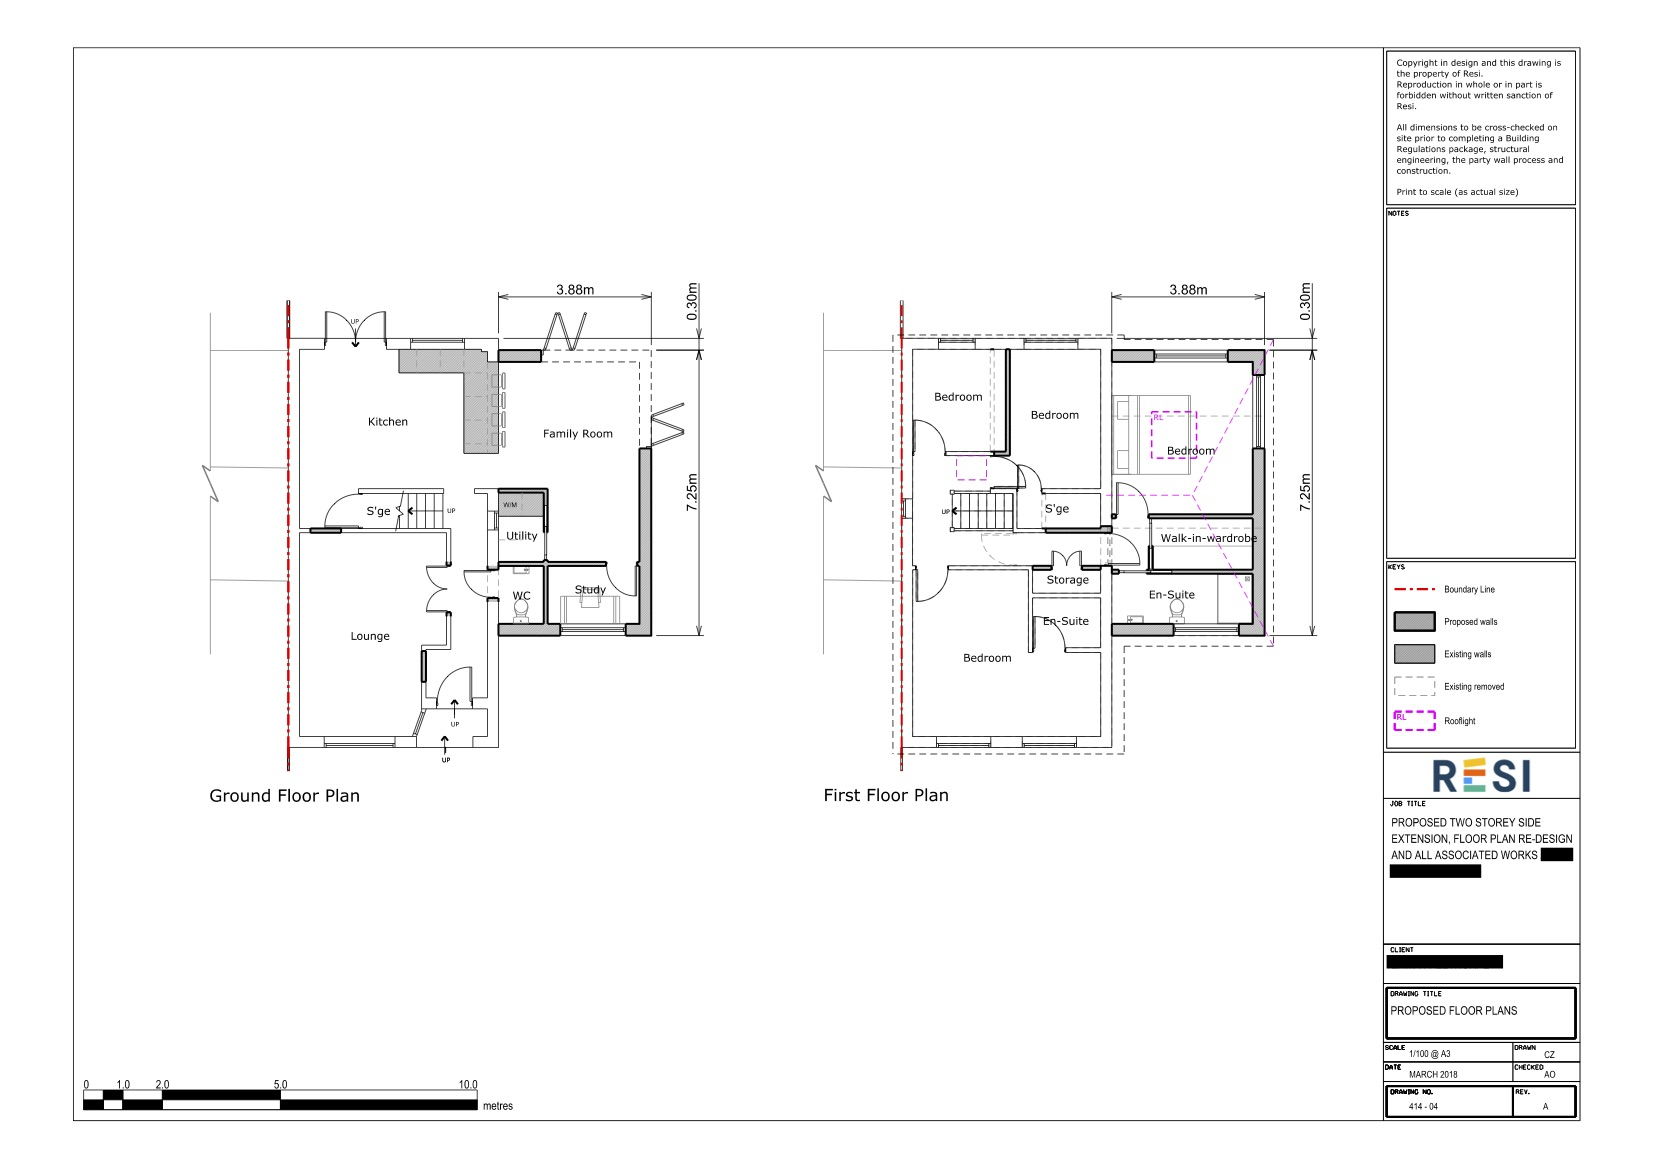 Architectural drawings rev a 9   ground and first floor plans